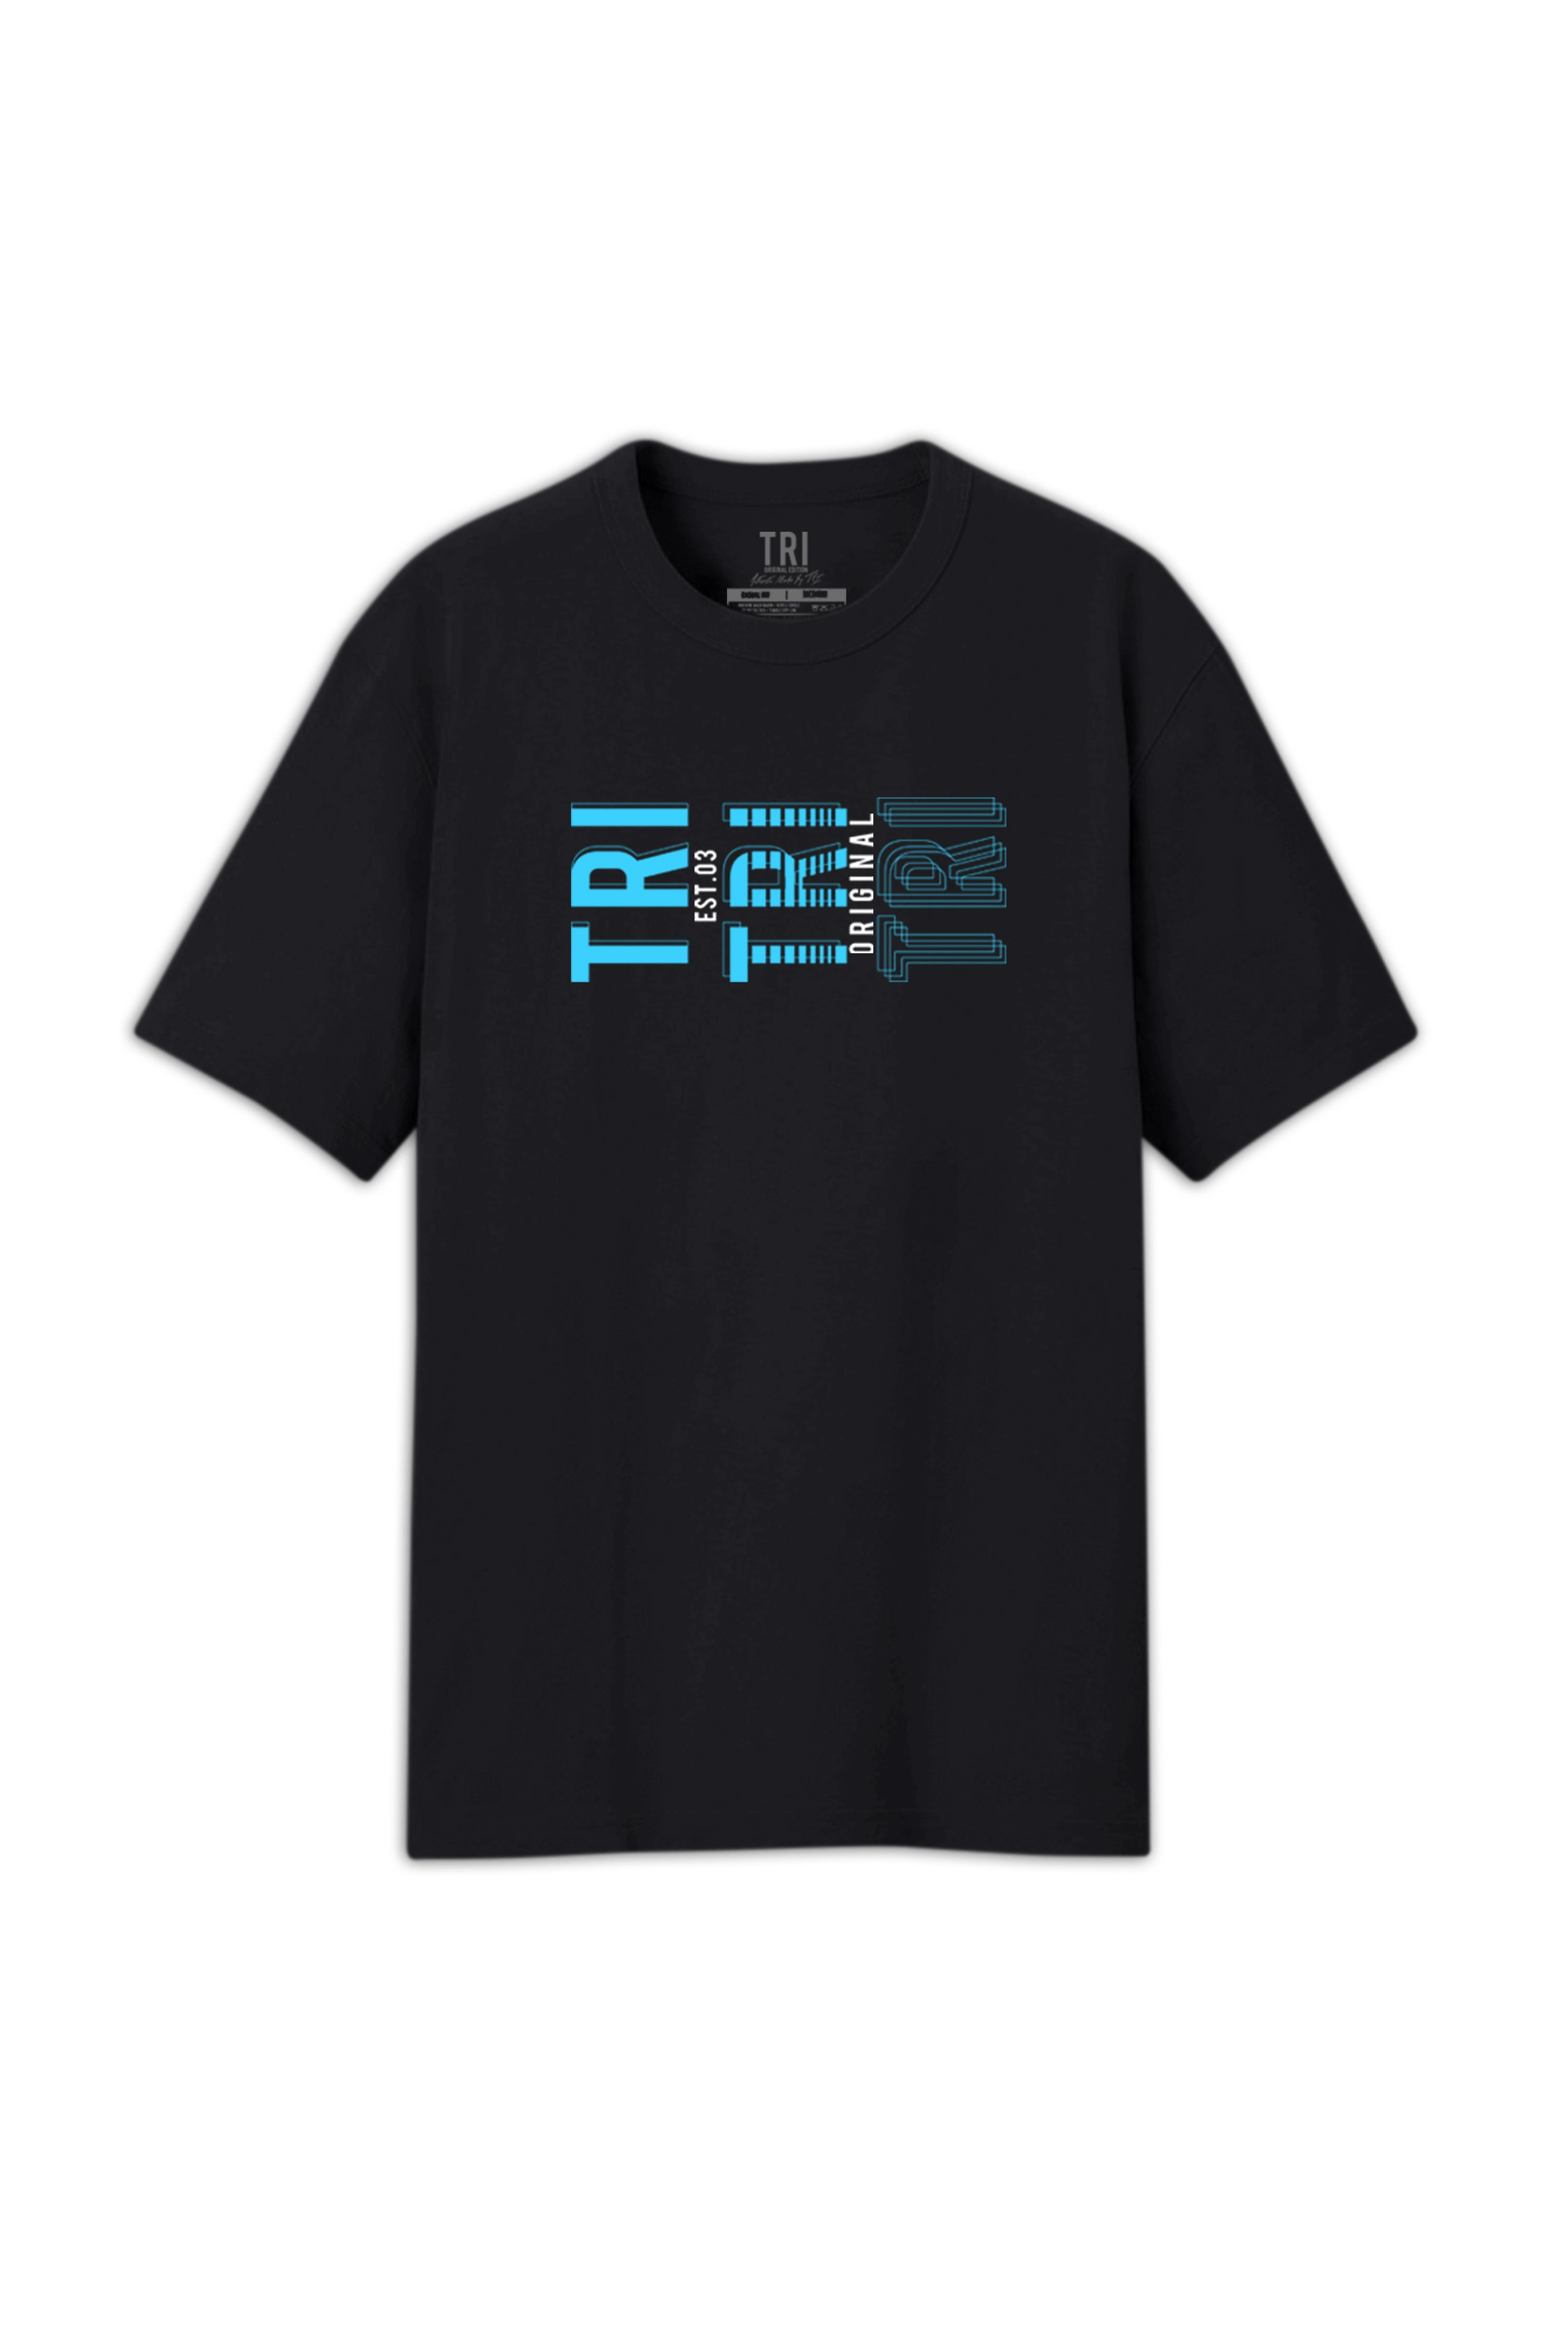 TRI Graphic T-Shirt T-8121